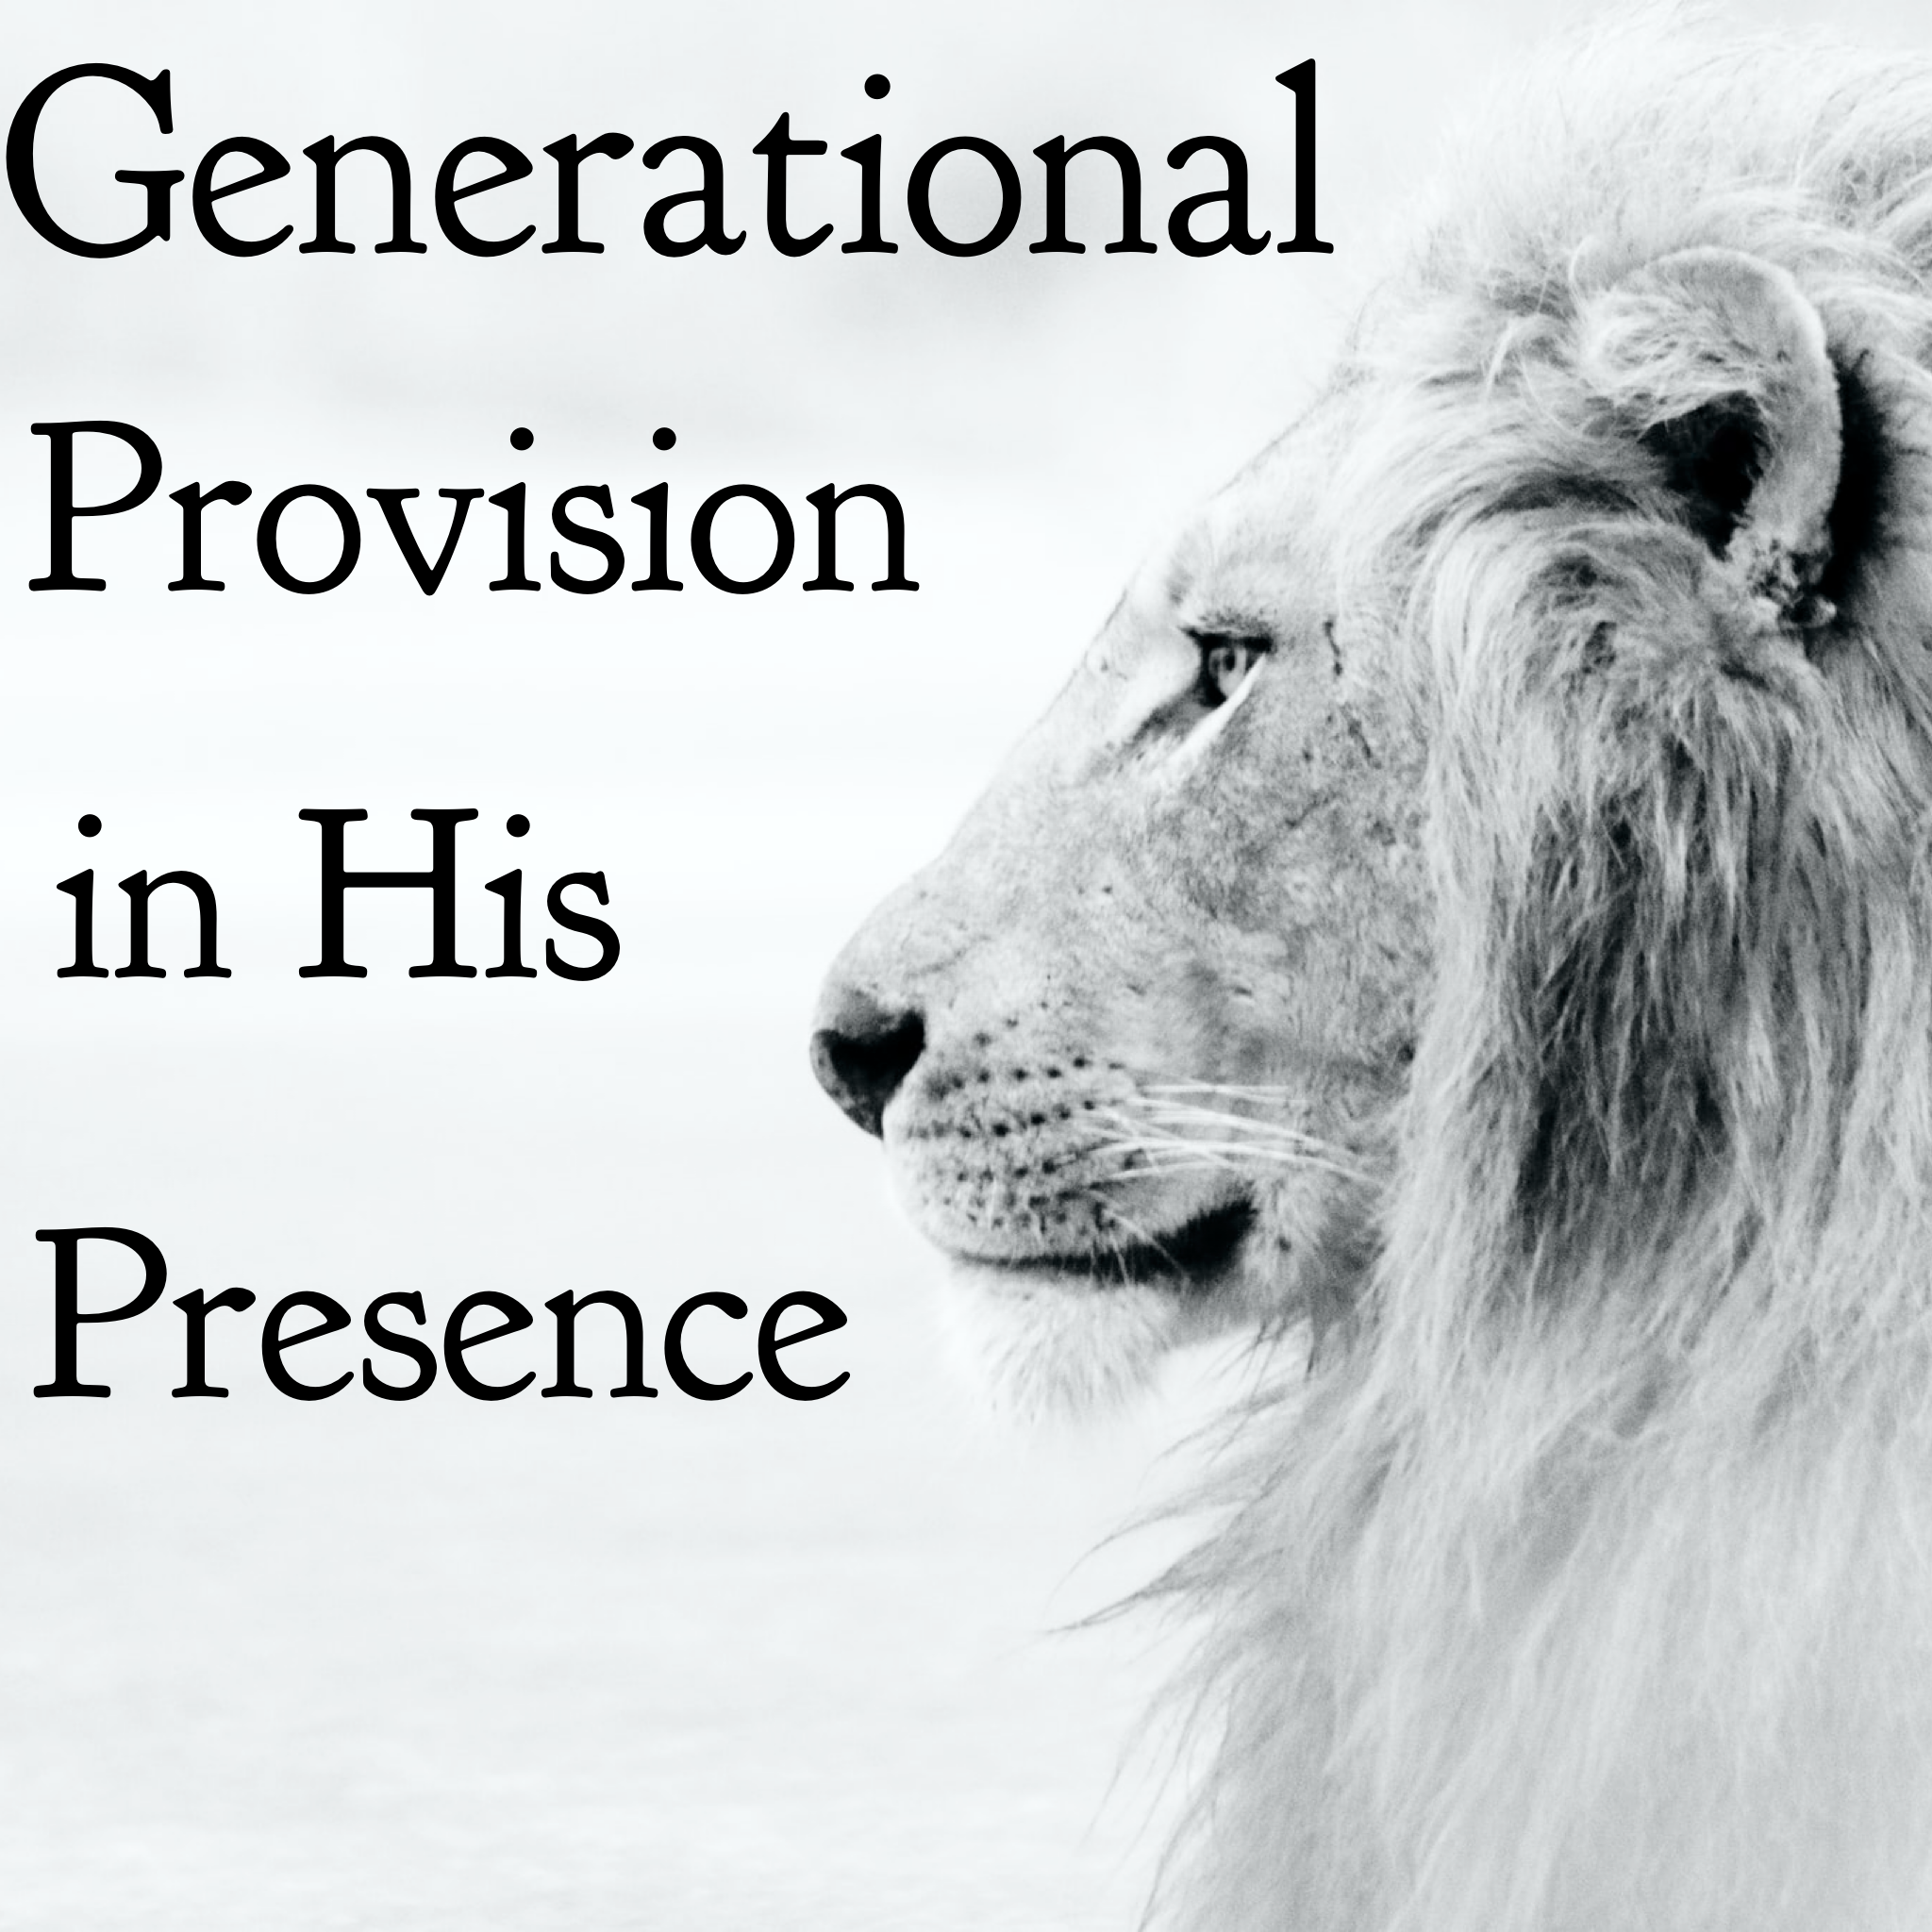 Generational Provision in His Presence - 10/25/20